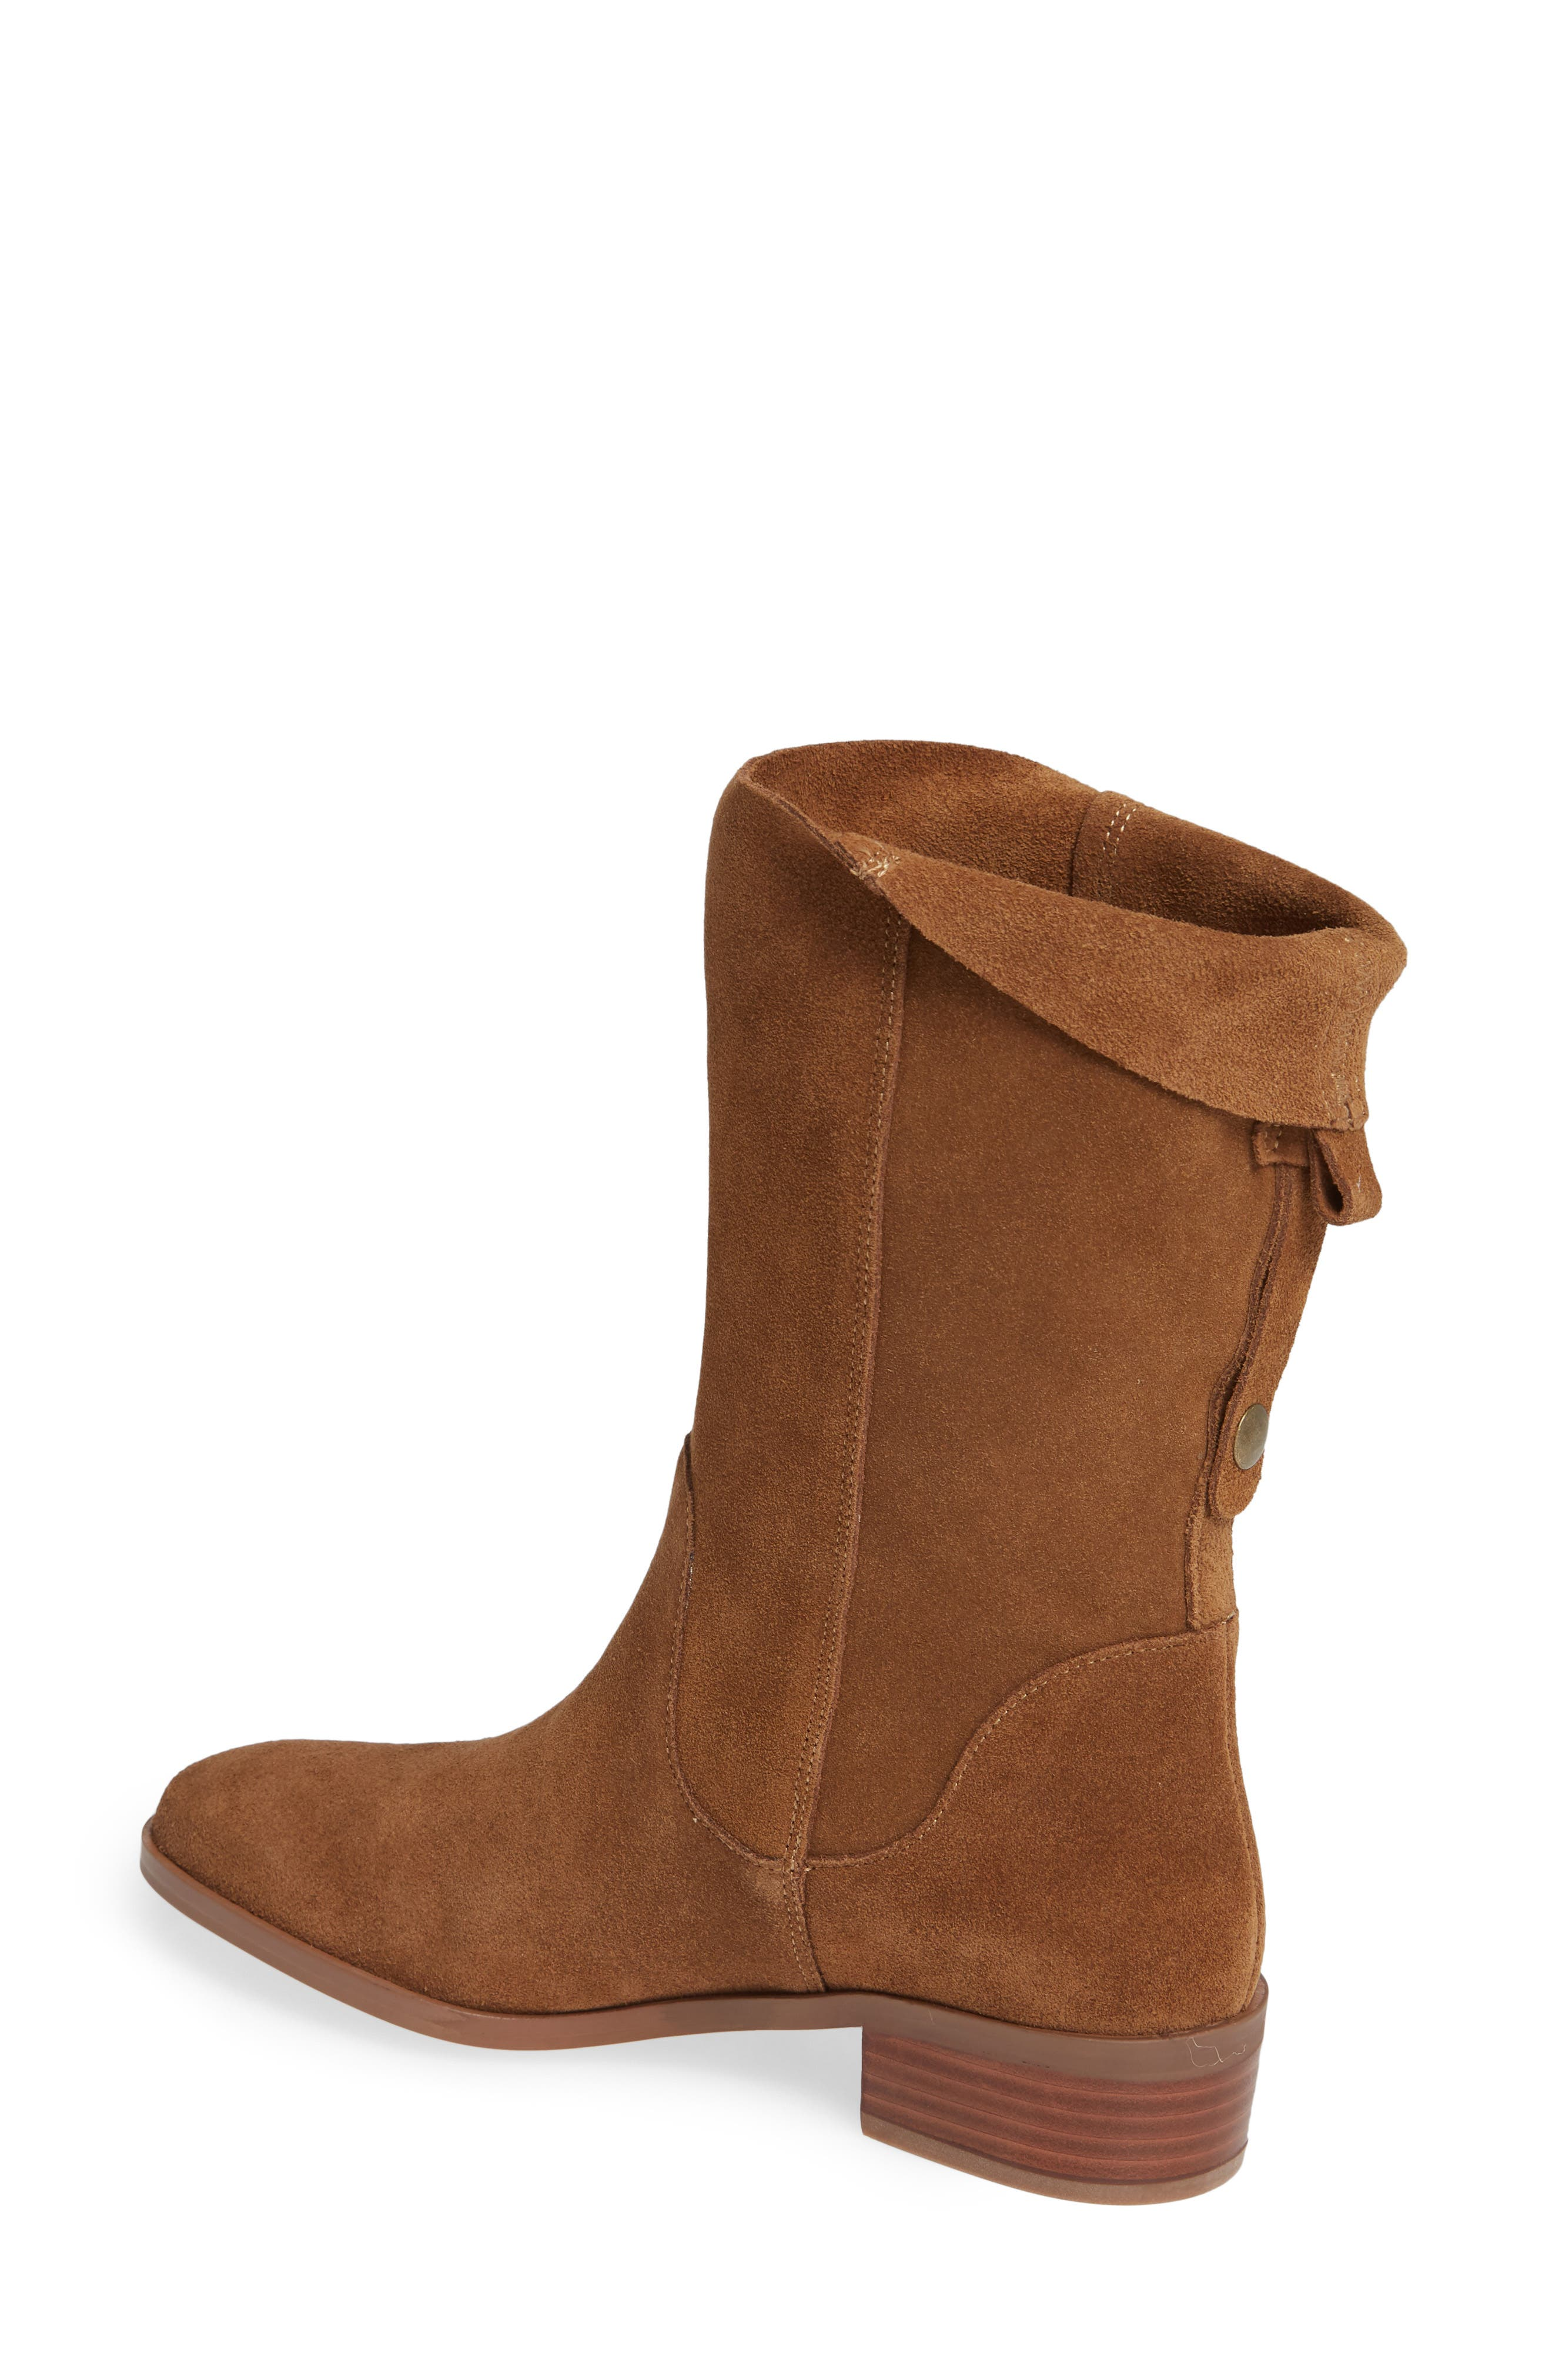 Calanth Bootie,                             Alternate thumbnail 2, color,                             TOBACCO SUEDE